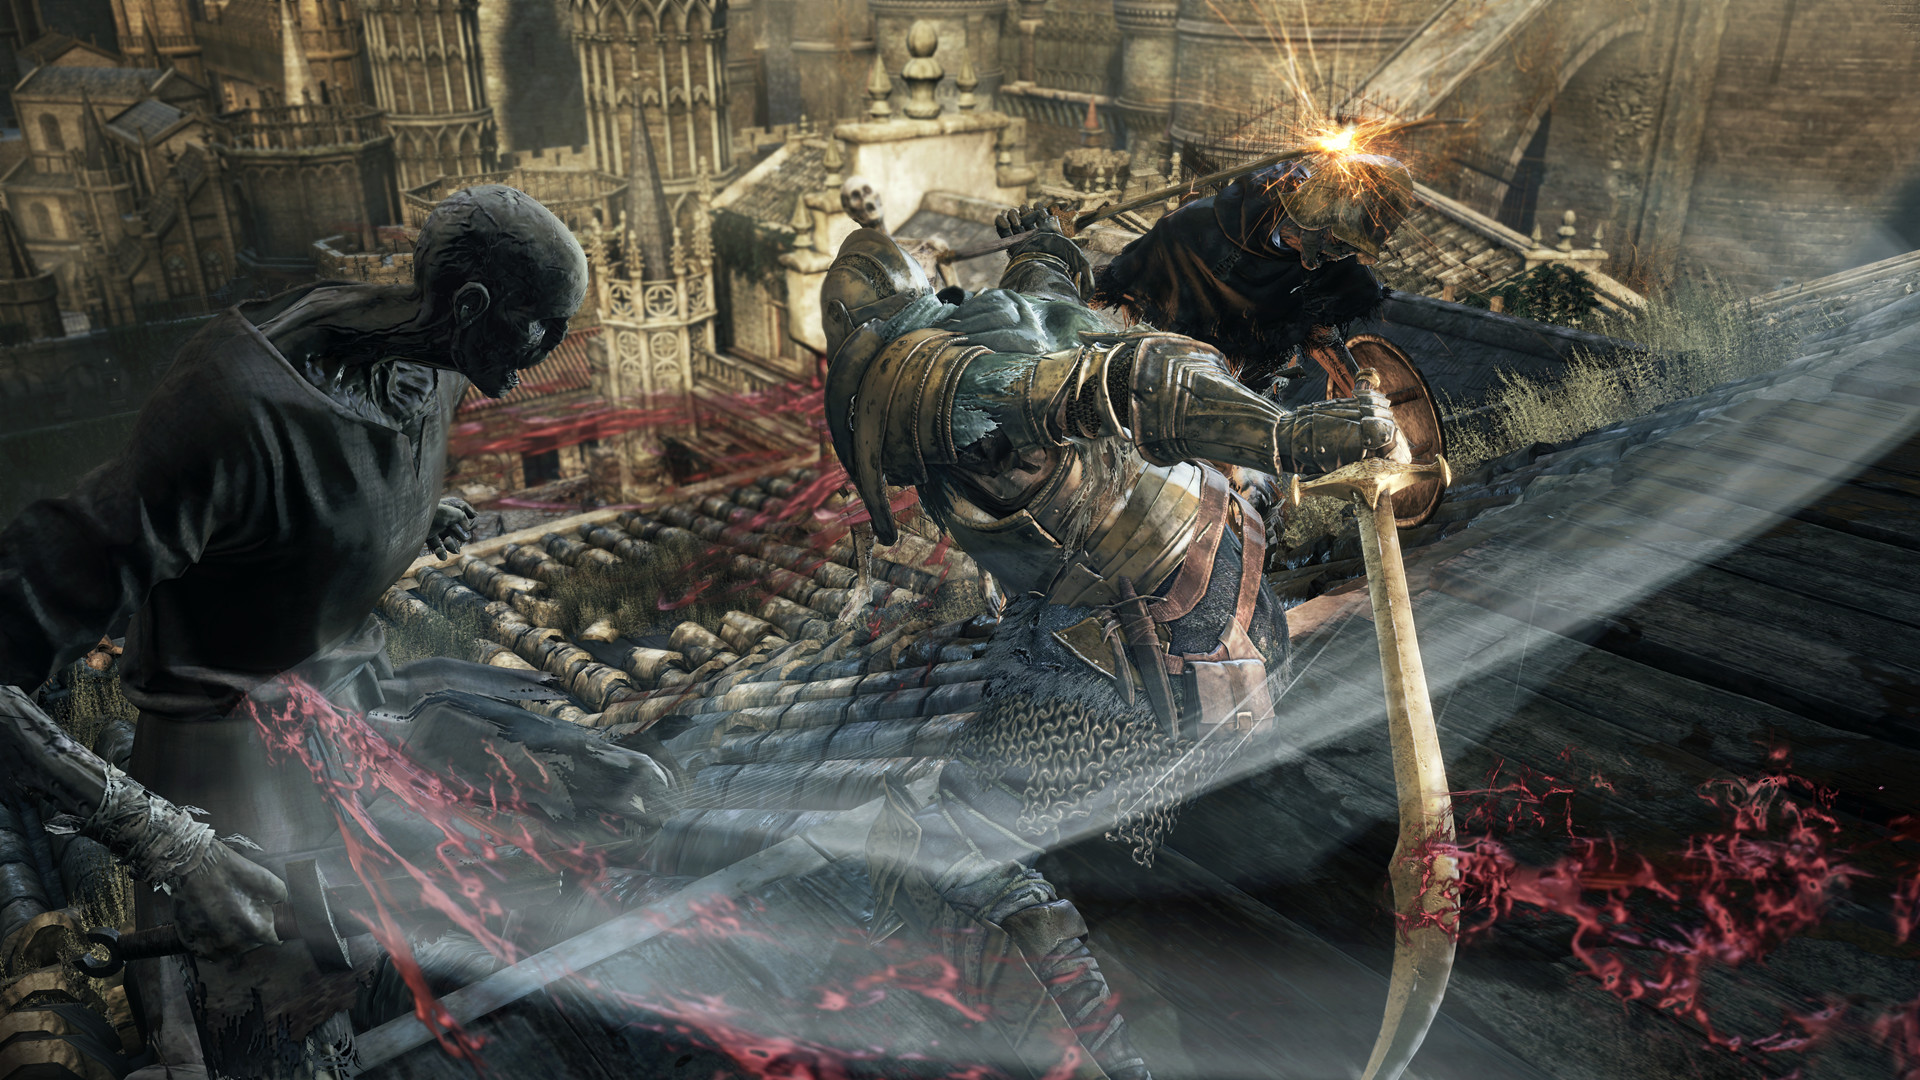 DARK SOULS III Repack Small Size Highly Compressed